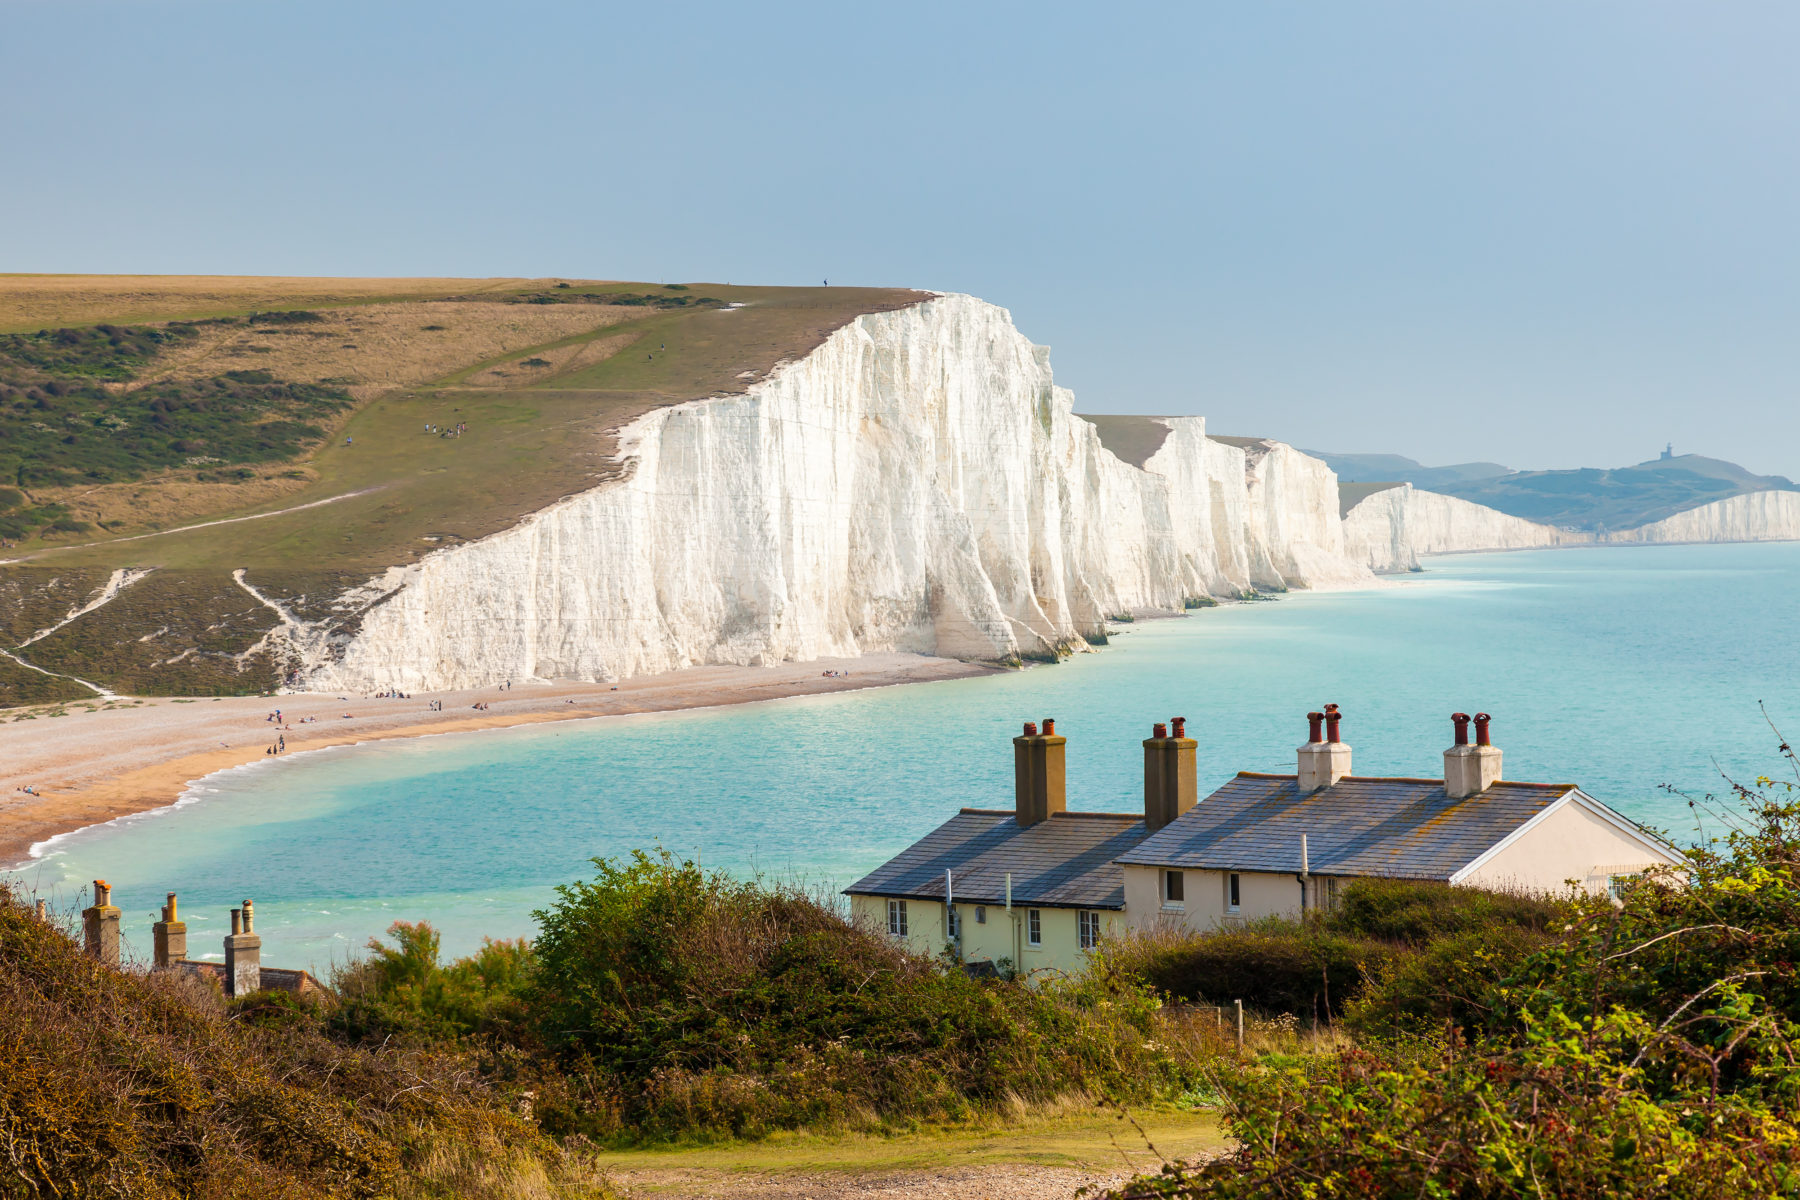 The Seven Sisters chalk cliffs in England